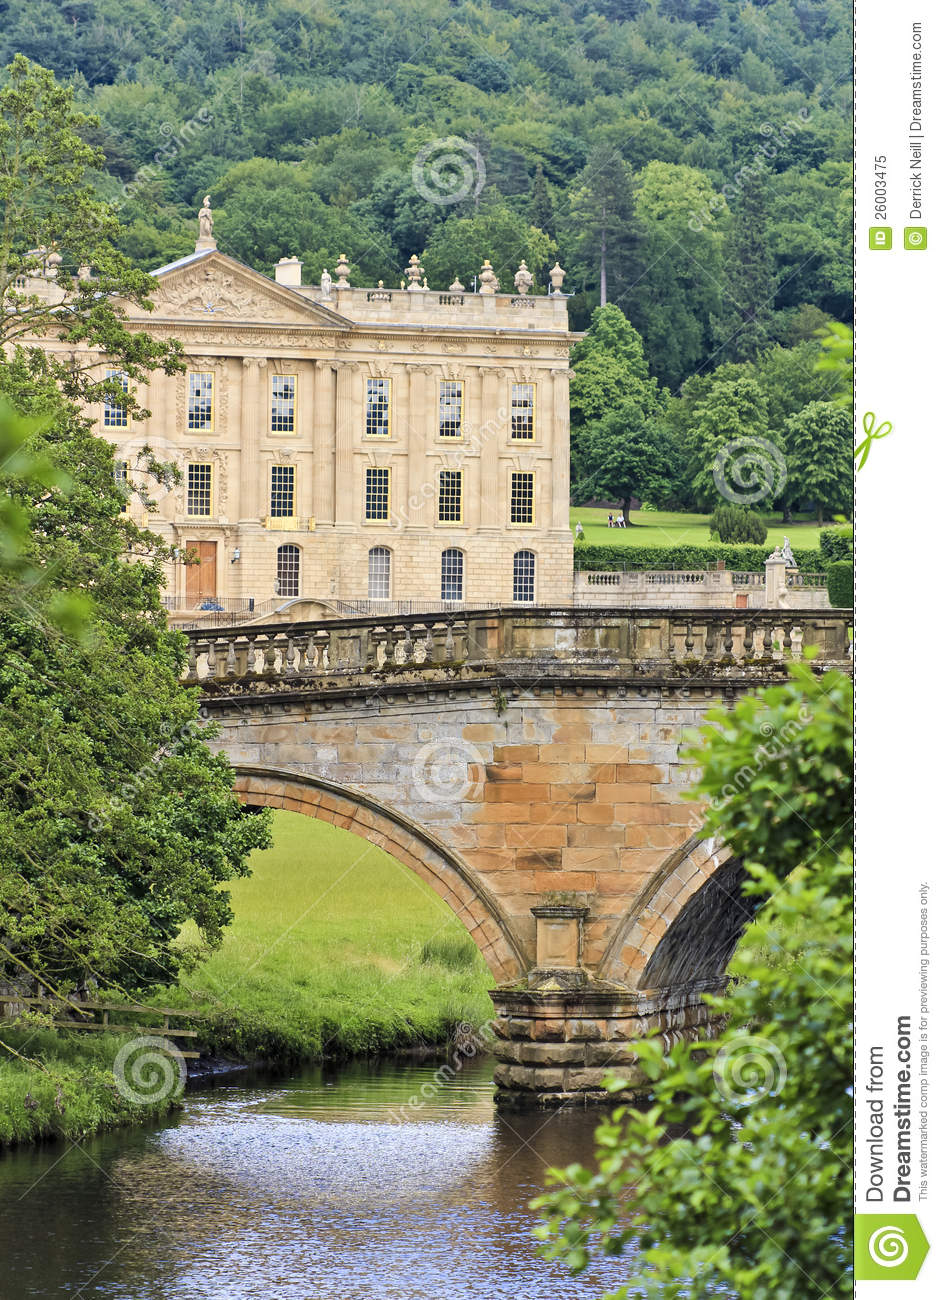 Chatsworth House History: A View Of Chatsworth House, Great Britain Editorial Image